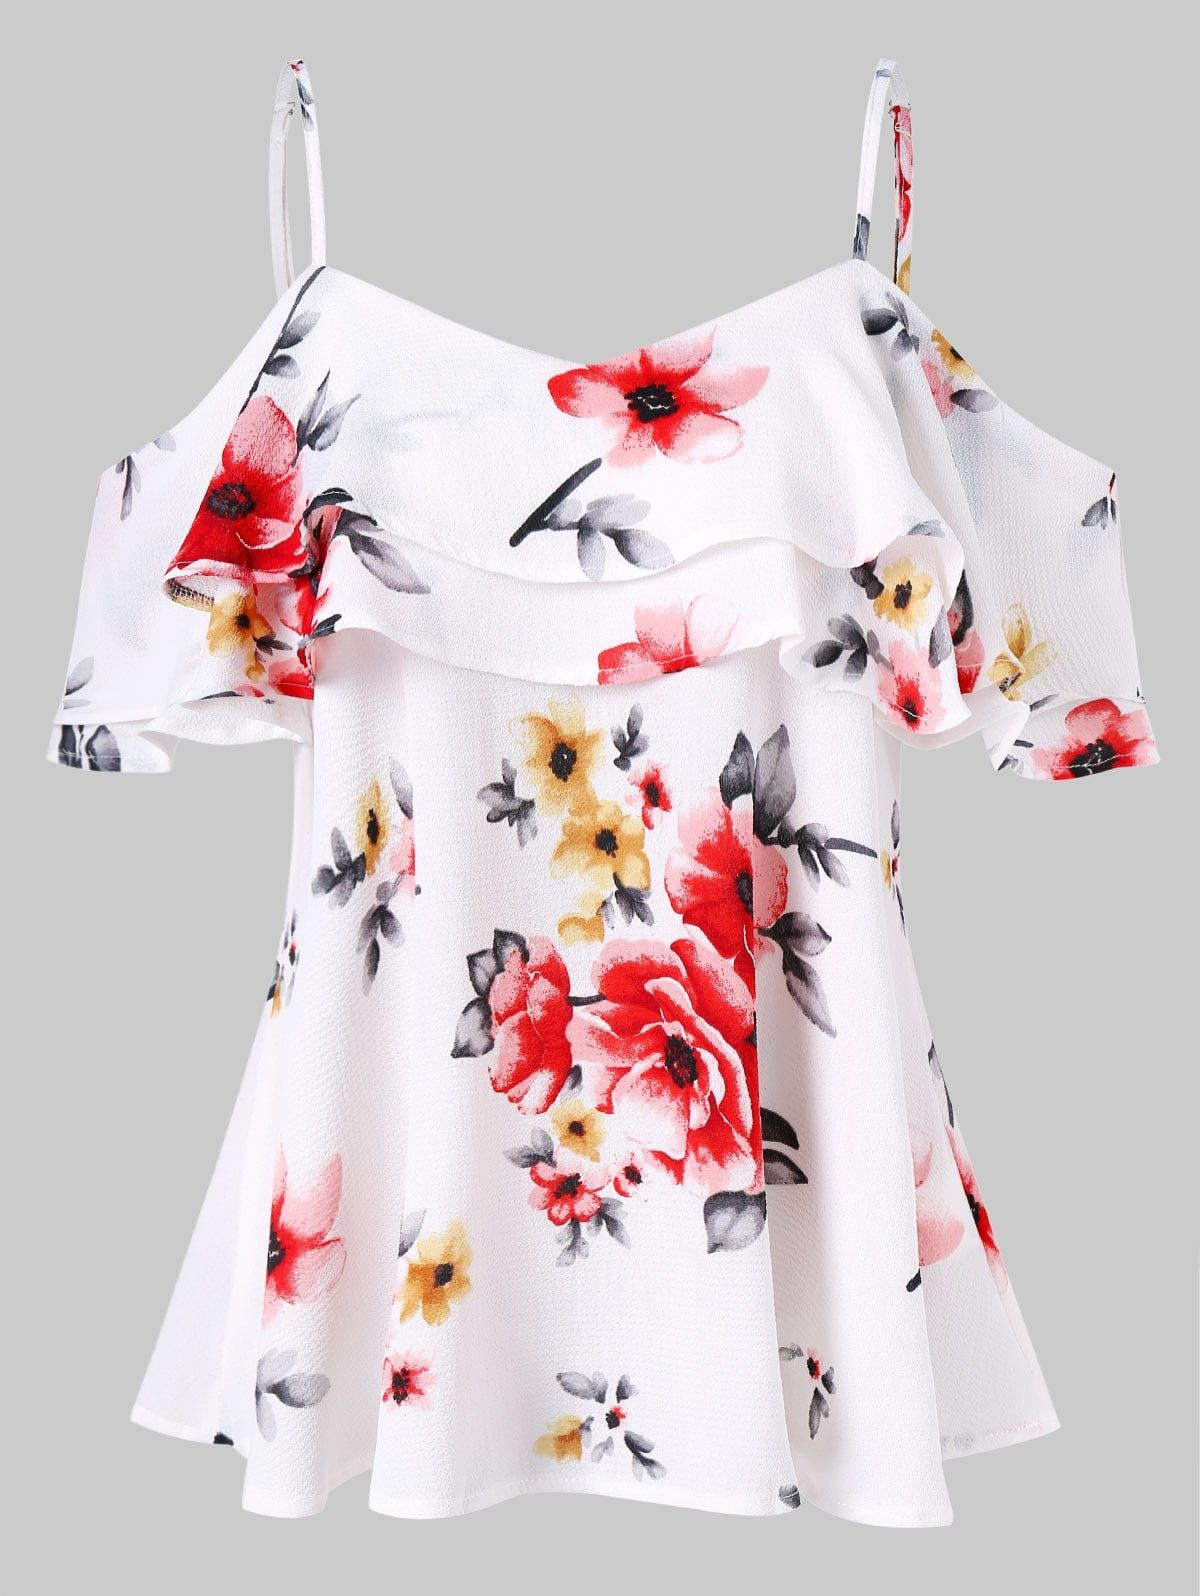 63796a4f1a15 Spaghetti Strap Floral Print Open Shoulder Blouse | Glam Gal ...